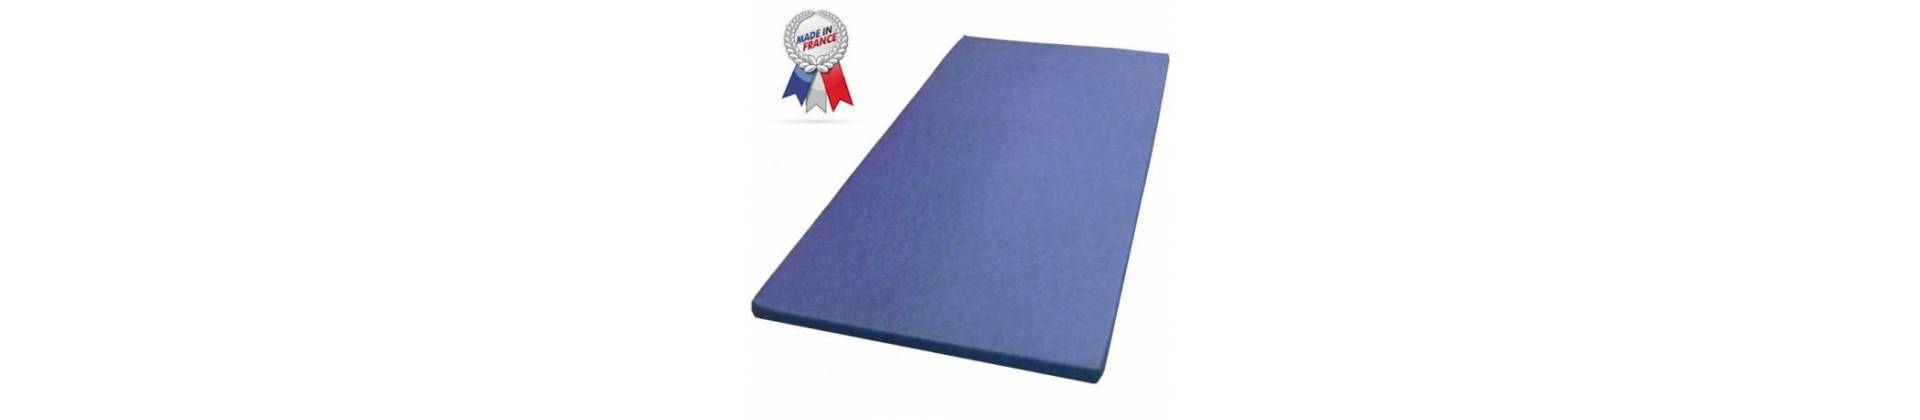 Tapis personnalisable